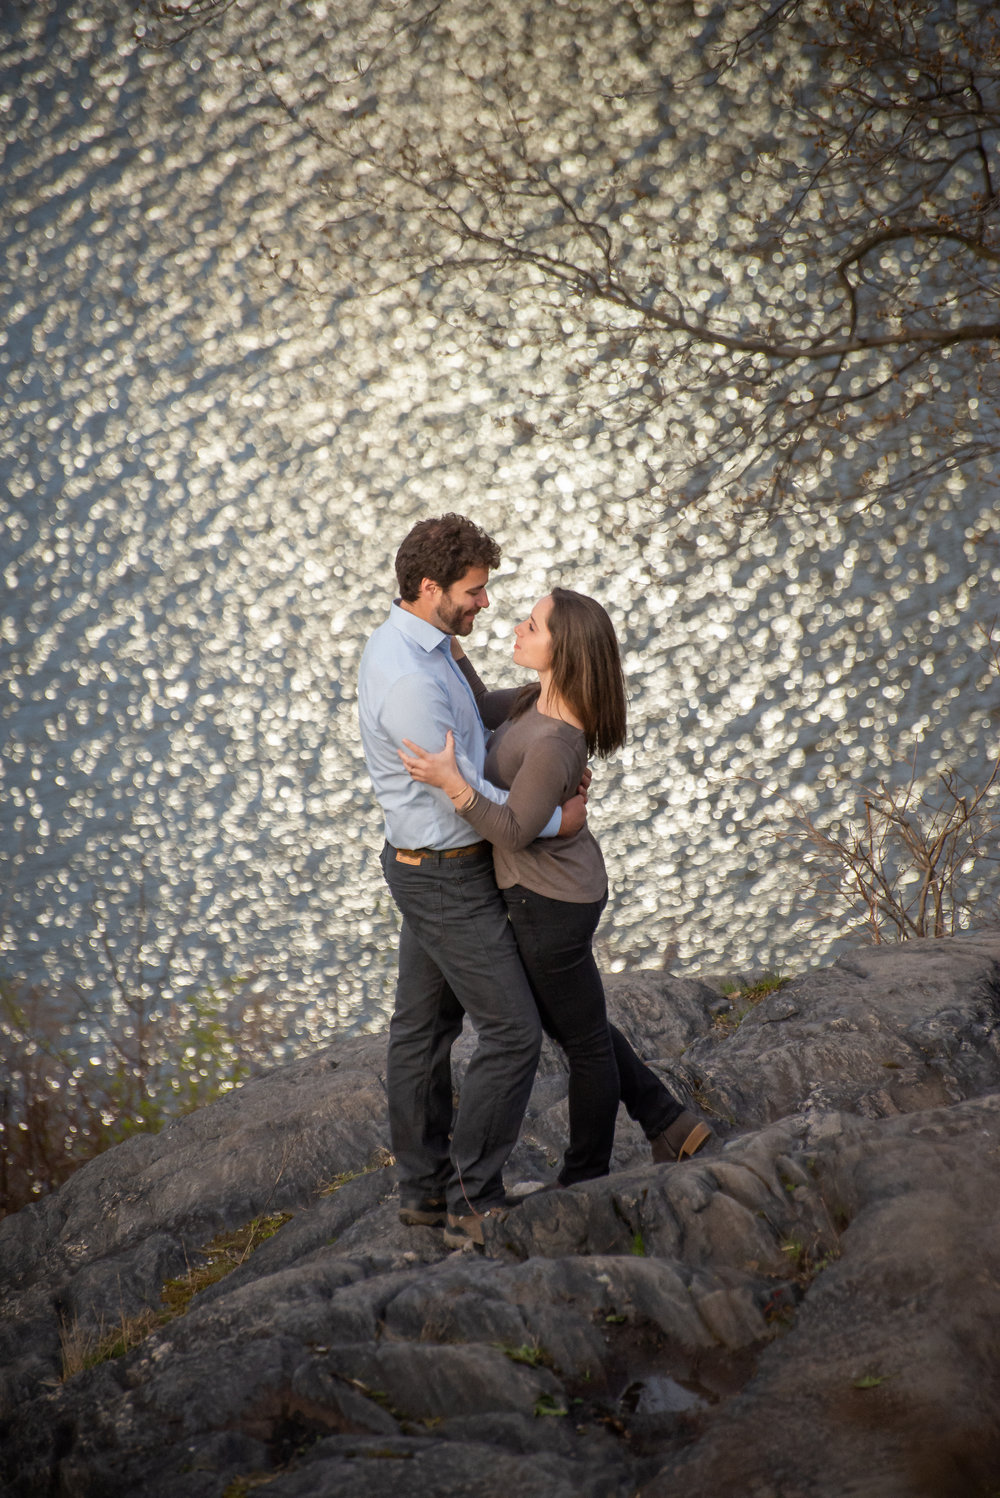 Central Park Harlem Meer Engagement Photos 3